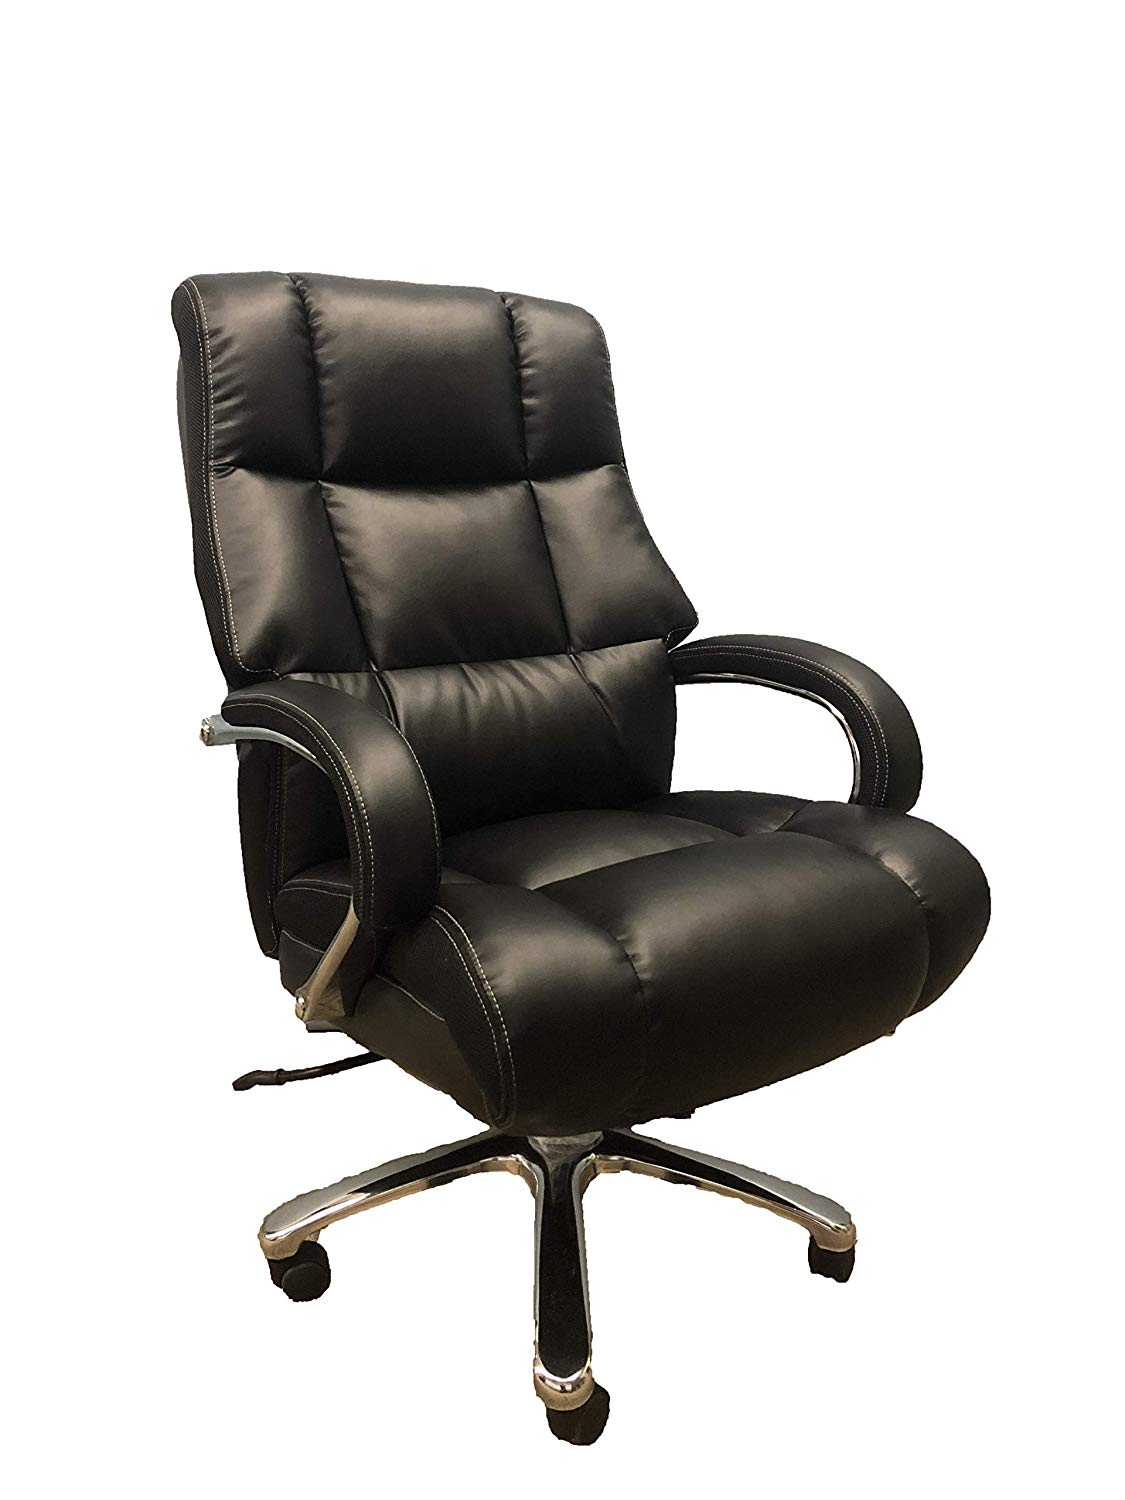 Pleasant Big And Tall Black Comfort Executive Office Chair With Extra Thick Padded Chrome Arms Inzonedesignstudio Interior Chair Design Inzonedesignstudiocom